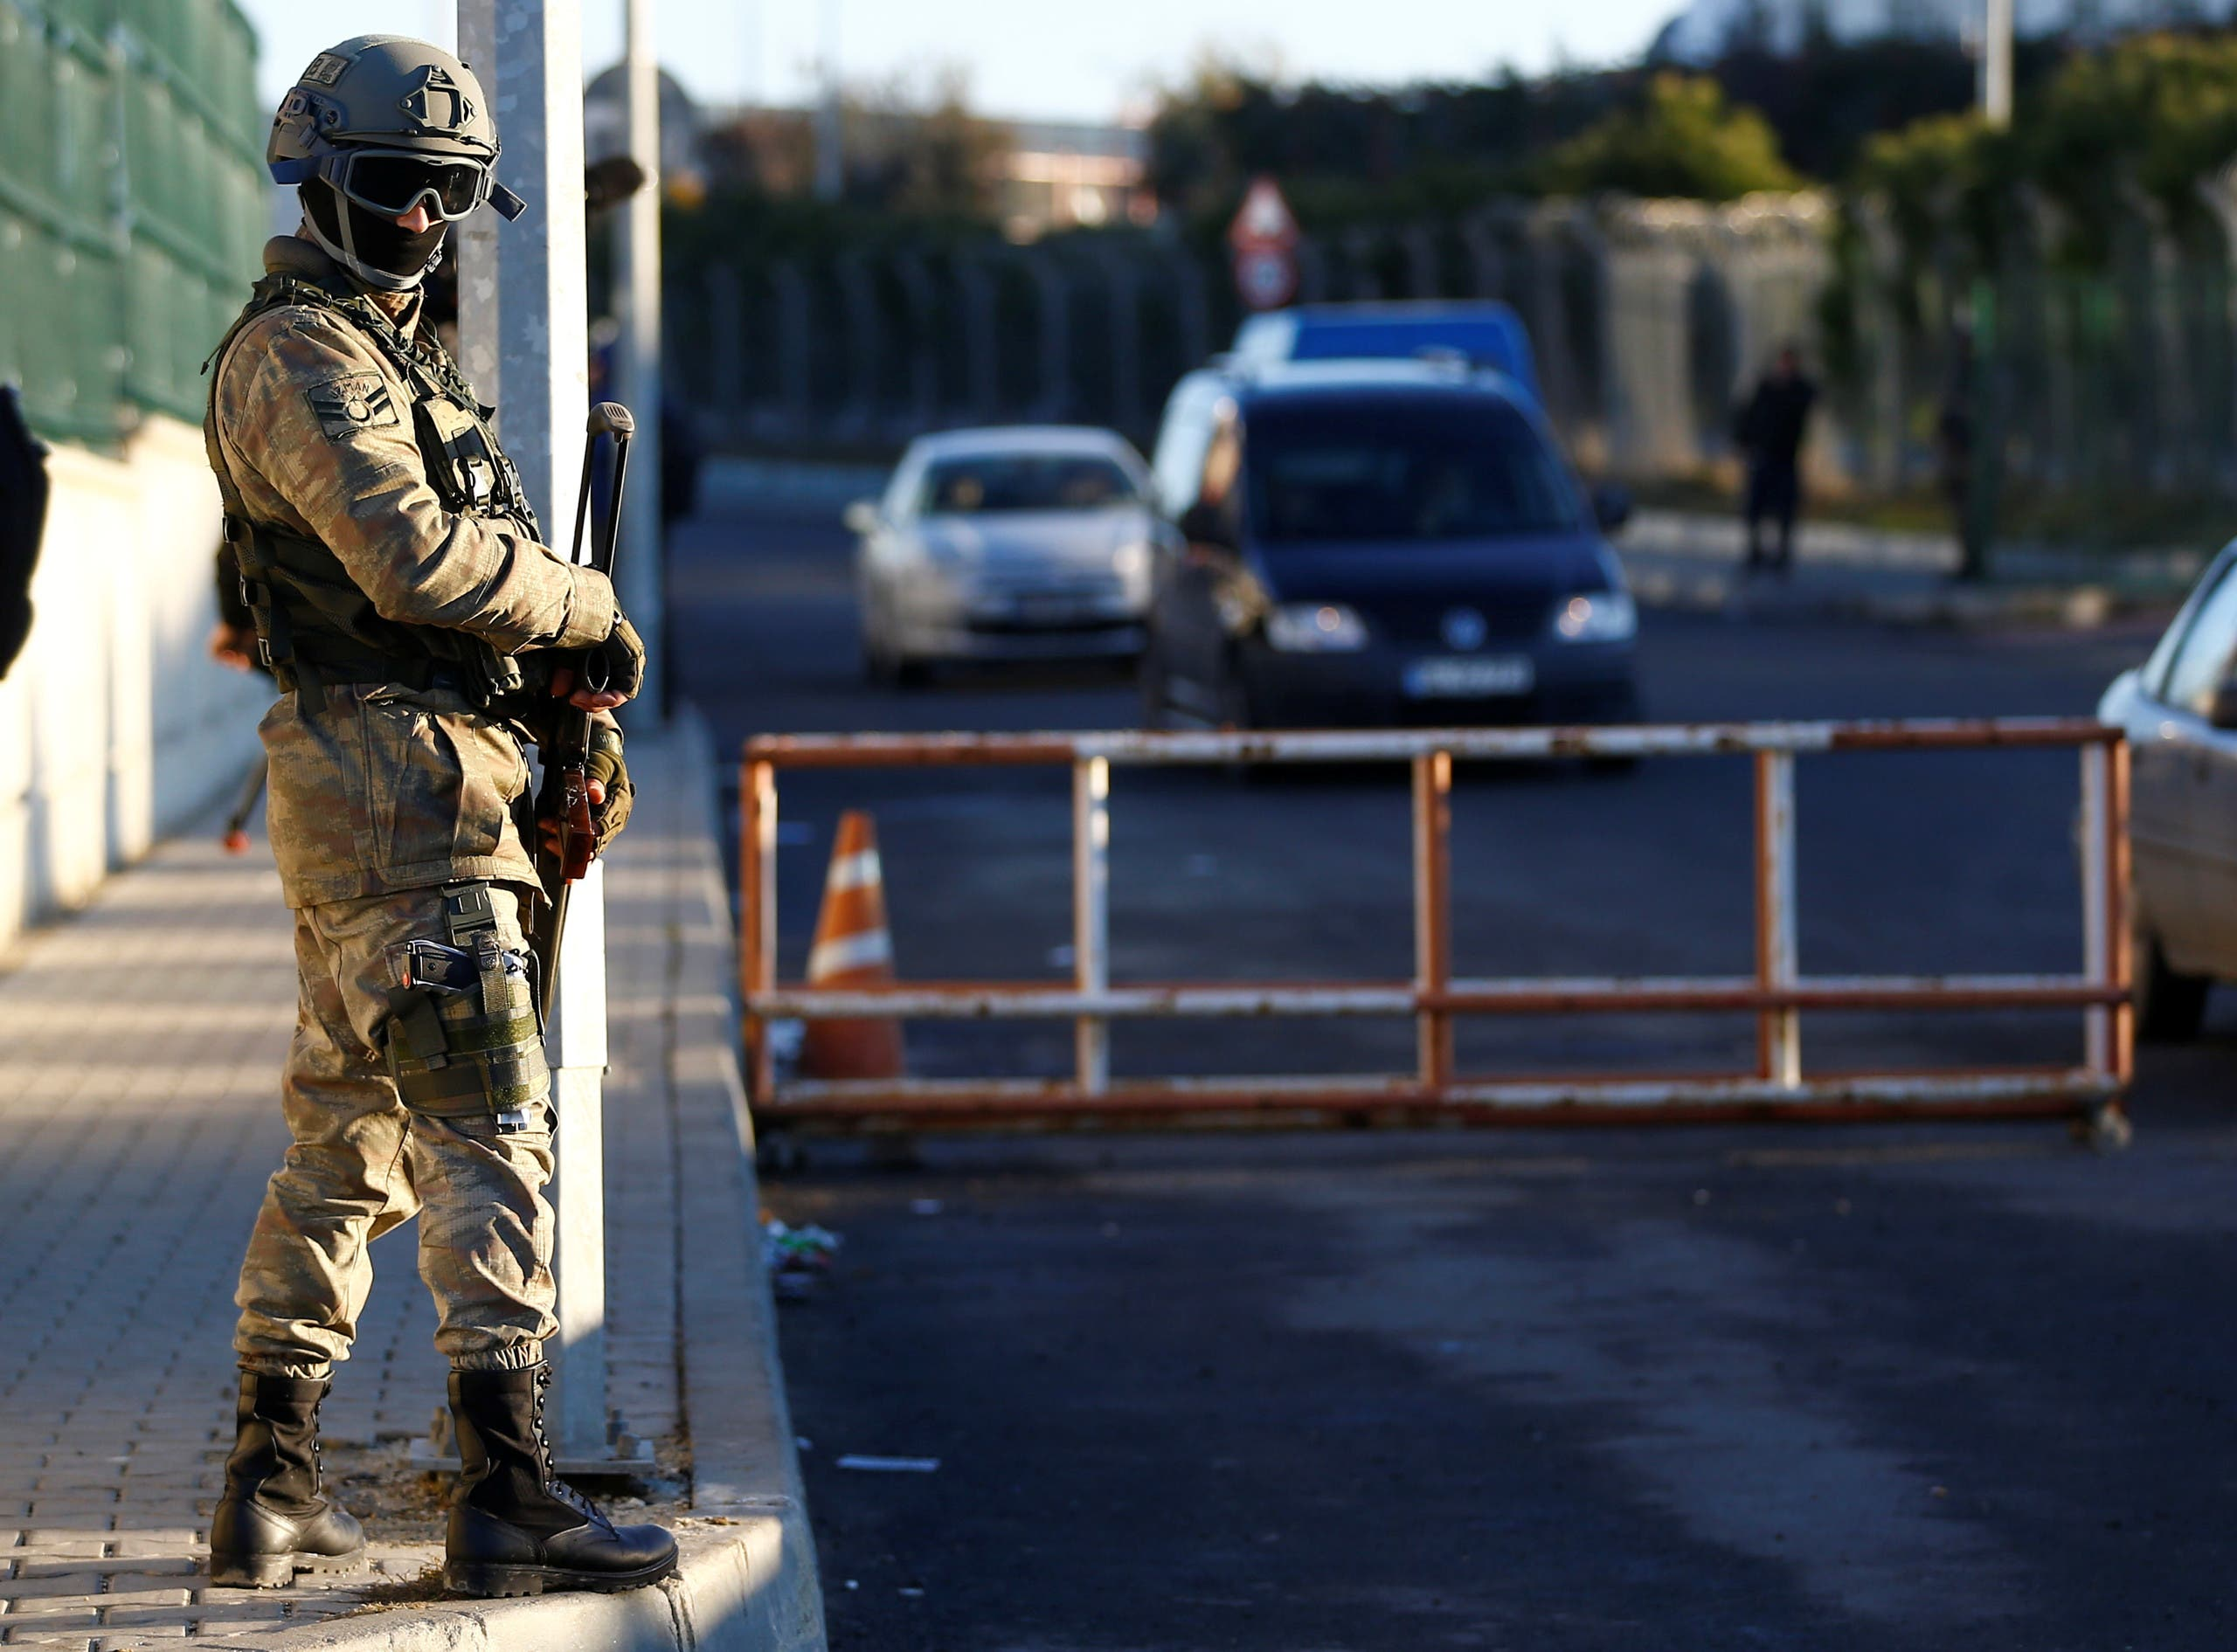 A Turkish soldier stands guard outside the Silivri Prison and Courthouse complex during the first trial related to Turkey's failed coup, in Istanbul on December 27, 2016. (Reuters)